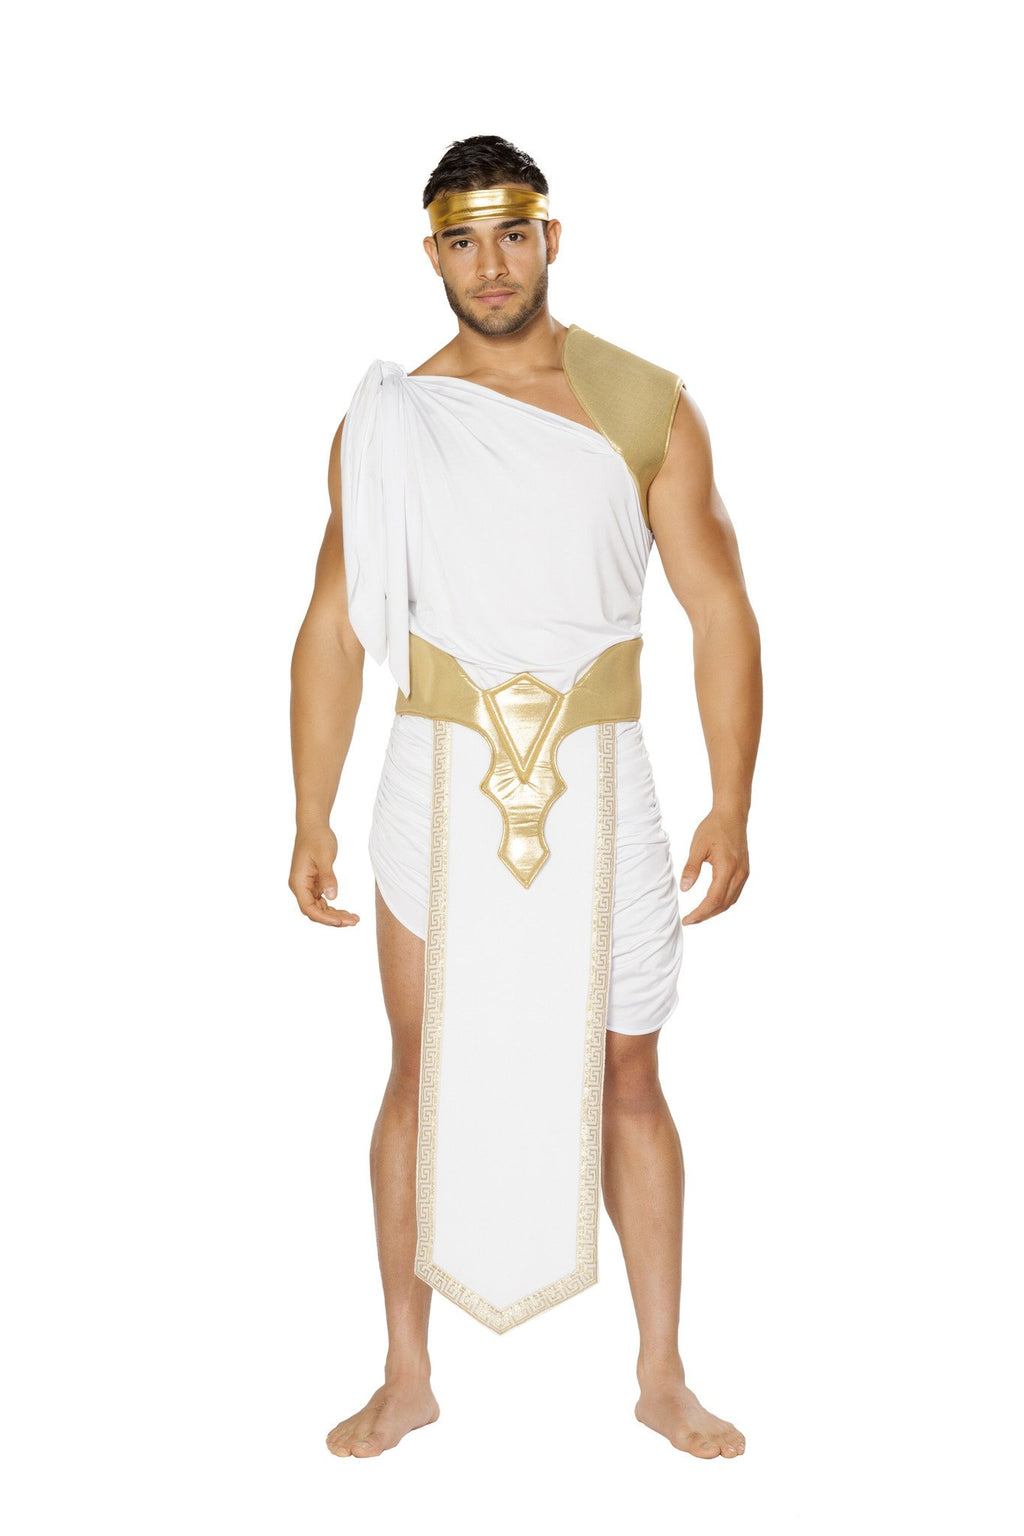 3pc Greek God - PlaythingsMiami